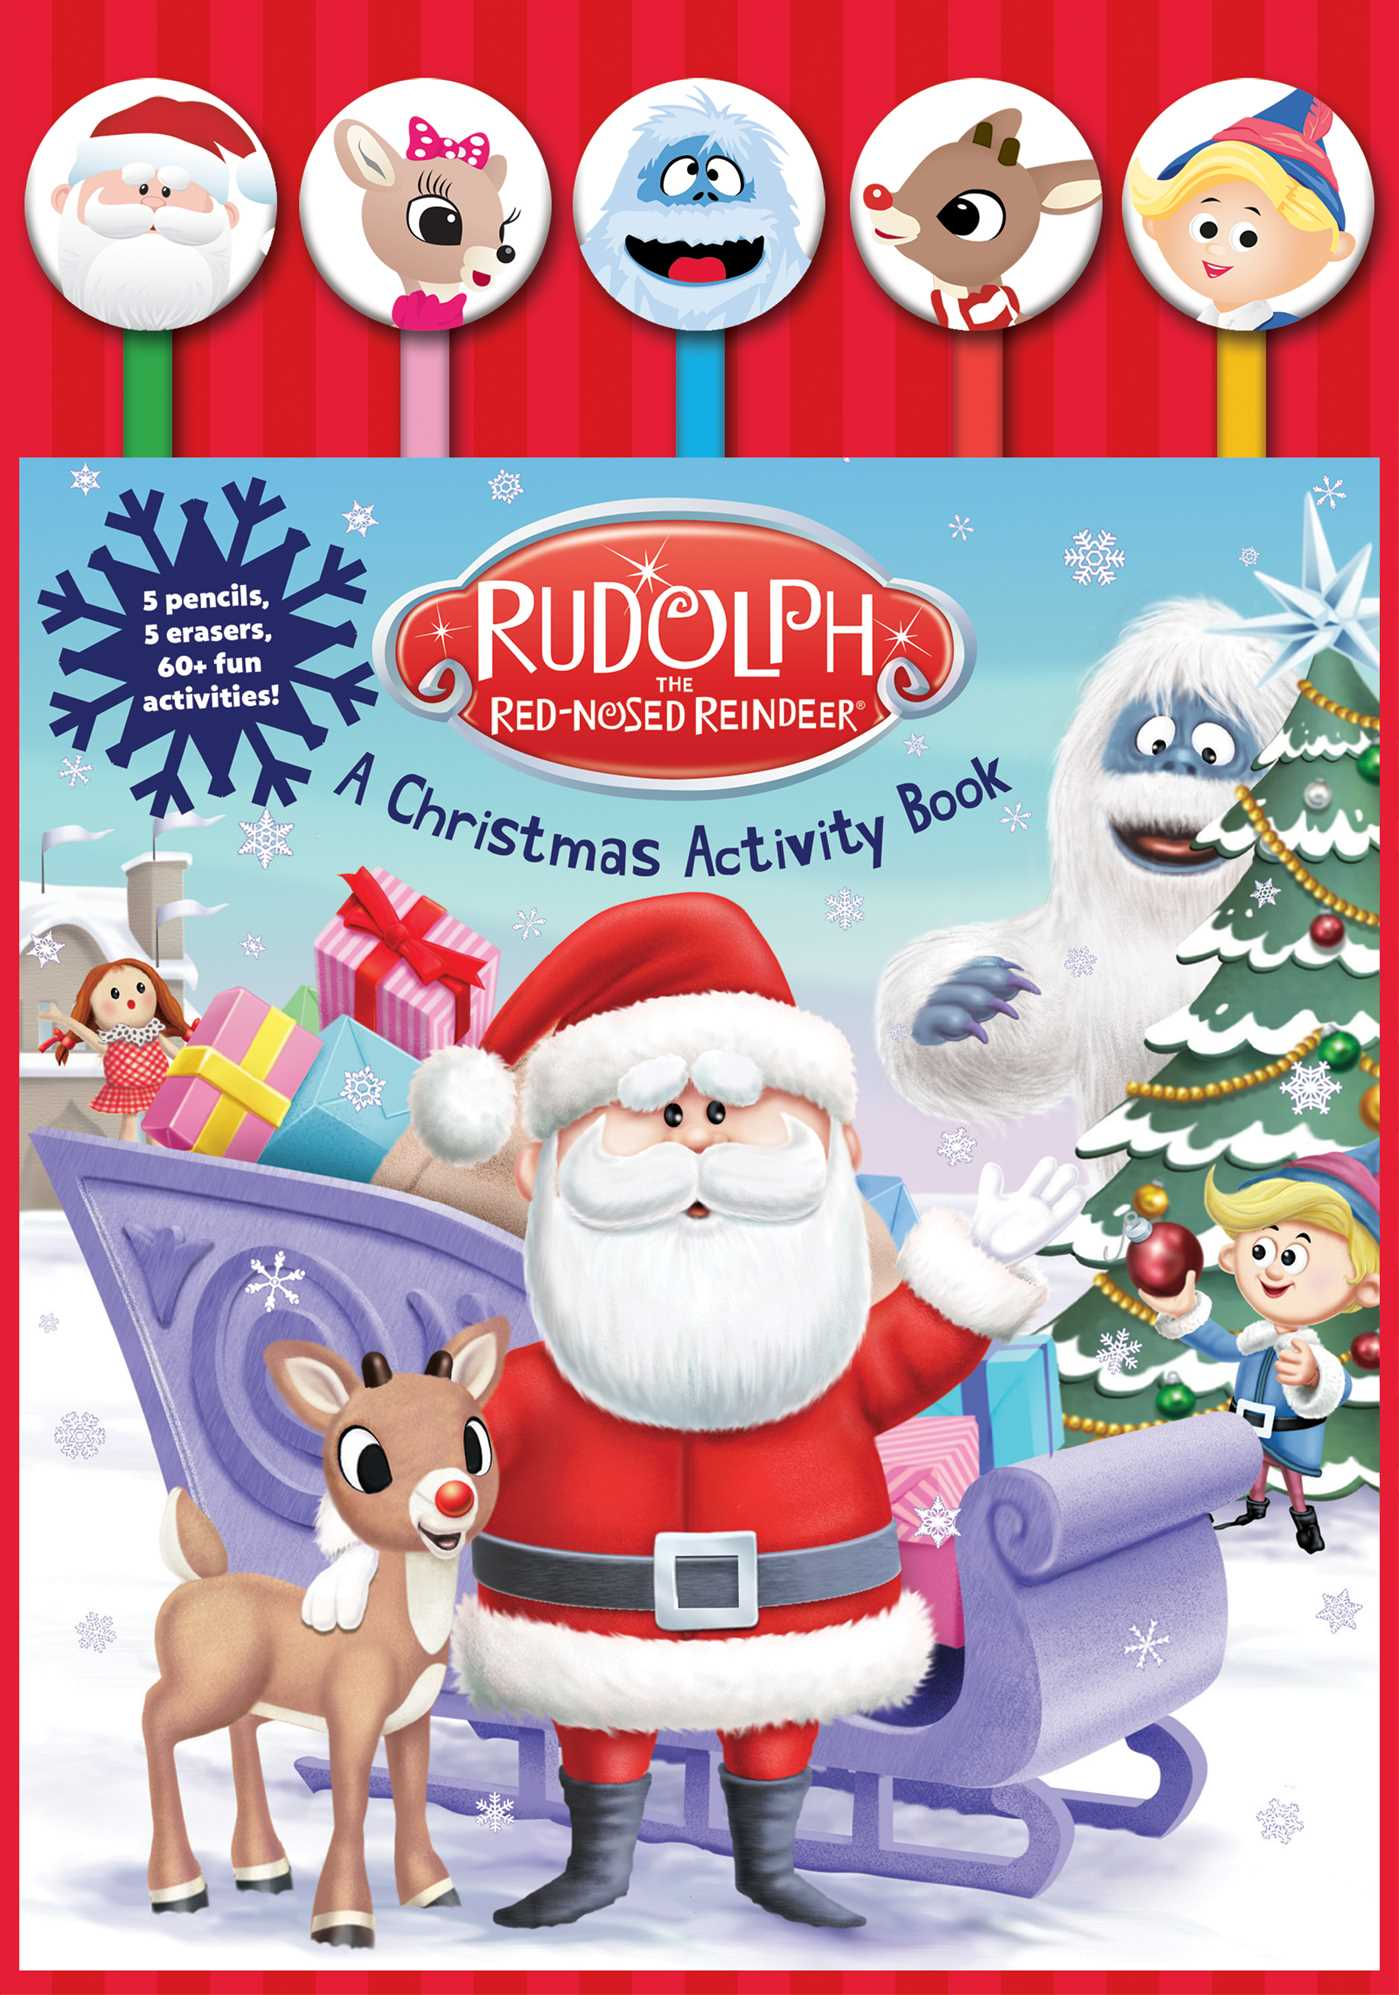 Rudolph the red nosed reindeer pencil toppers 9781684123797 hr